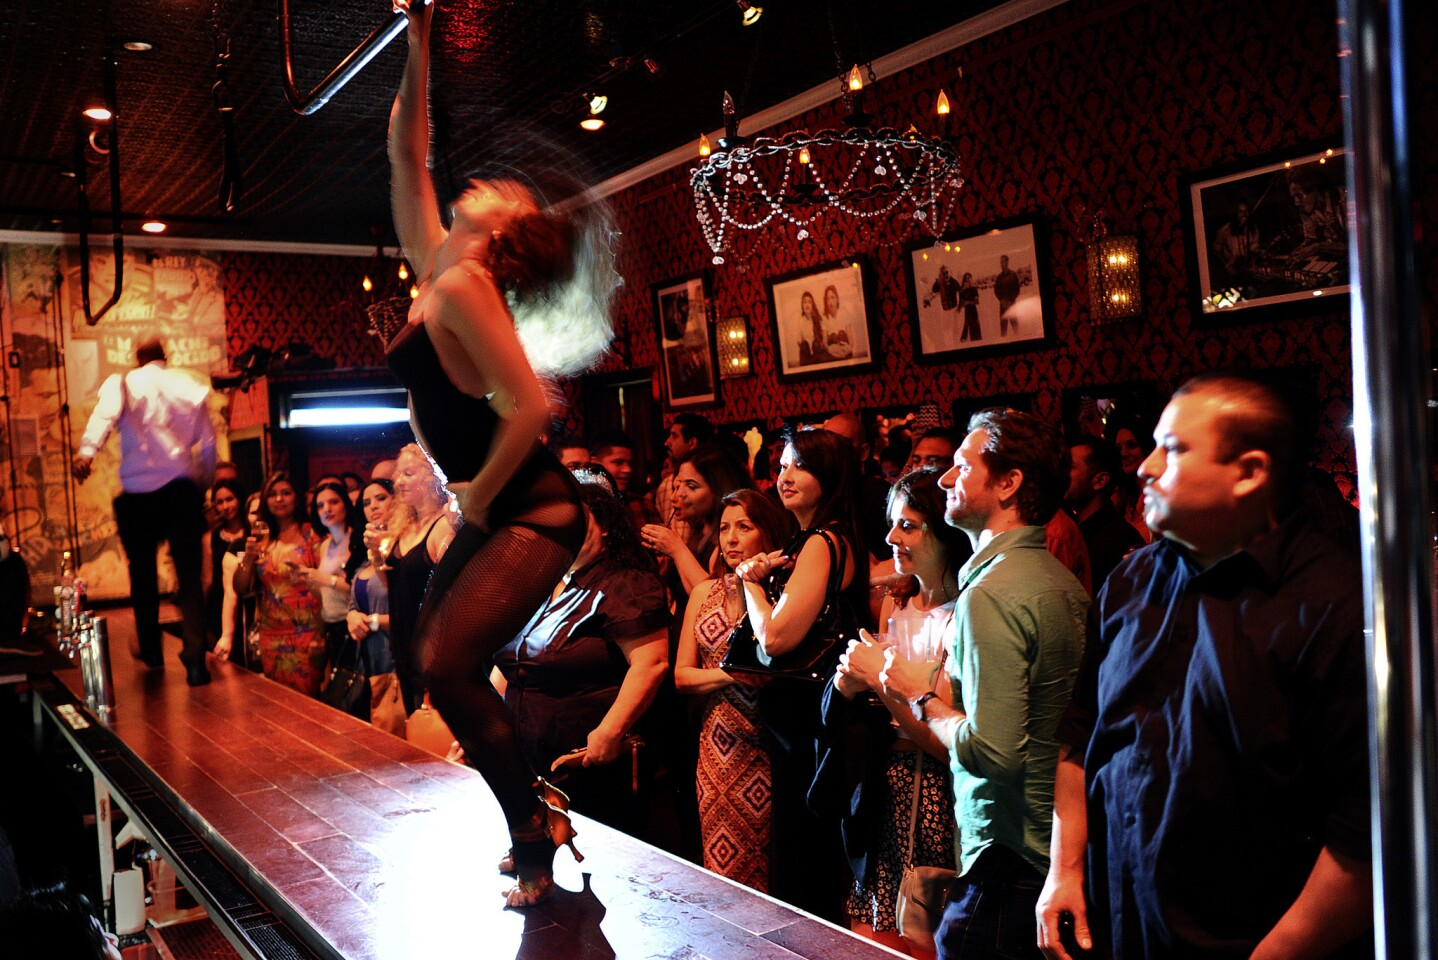 Customers enjoy a burlesque show on a Saturday night at the Eastside Luv wine bar in Boyle Heights. When it opened next door to Las Palomas in 2006, the neighborhood was hearing increasing chatter about imminent gentrification.